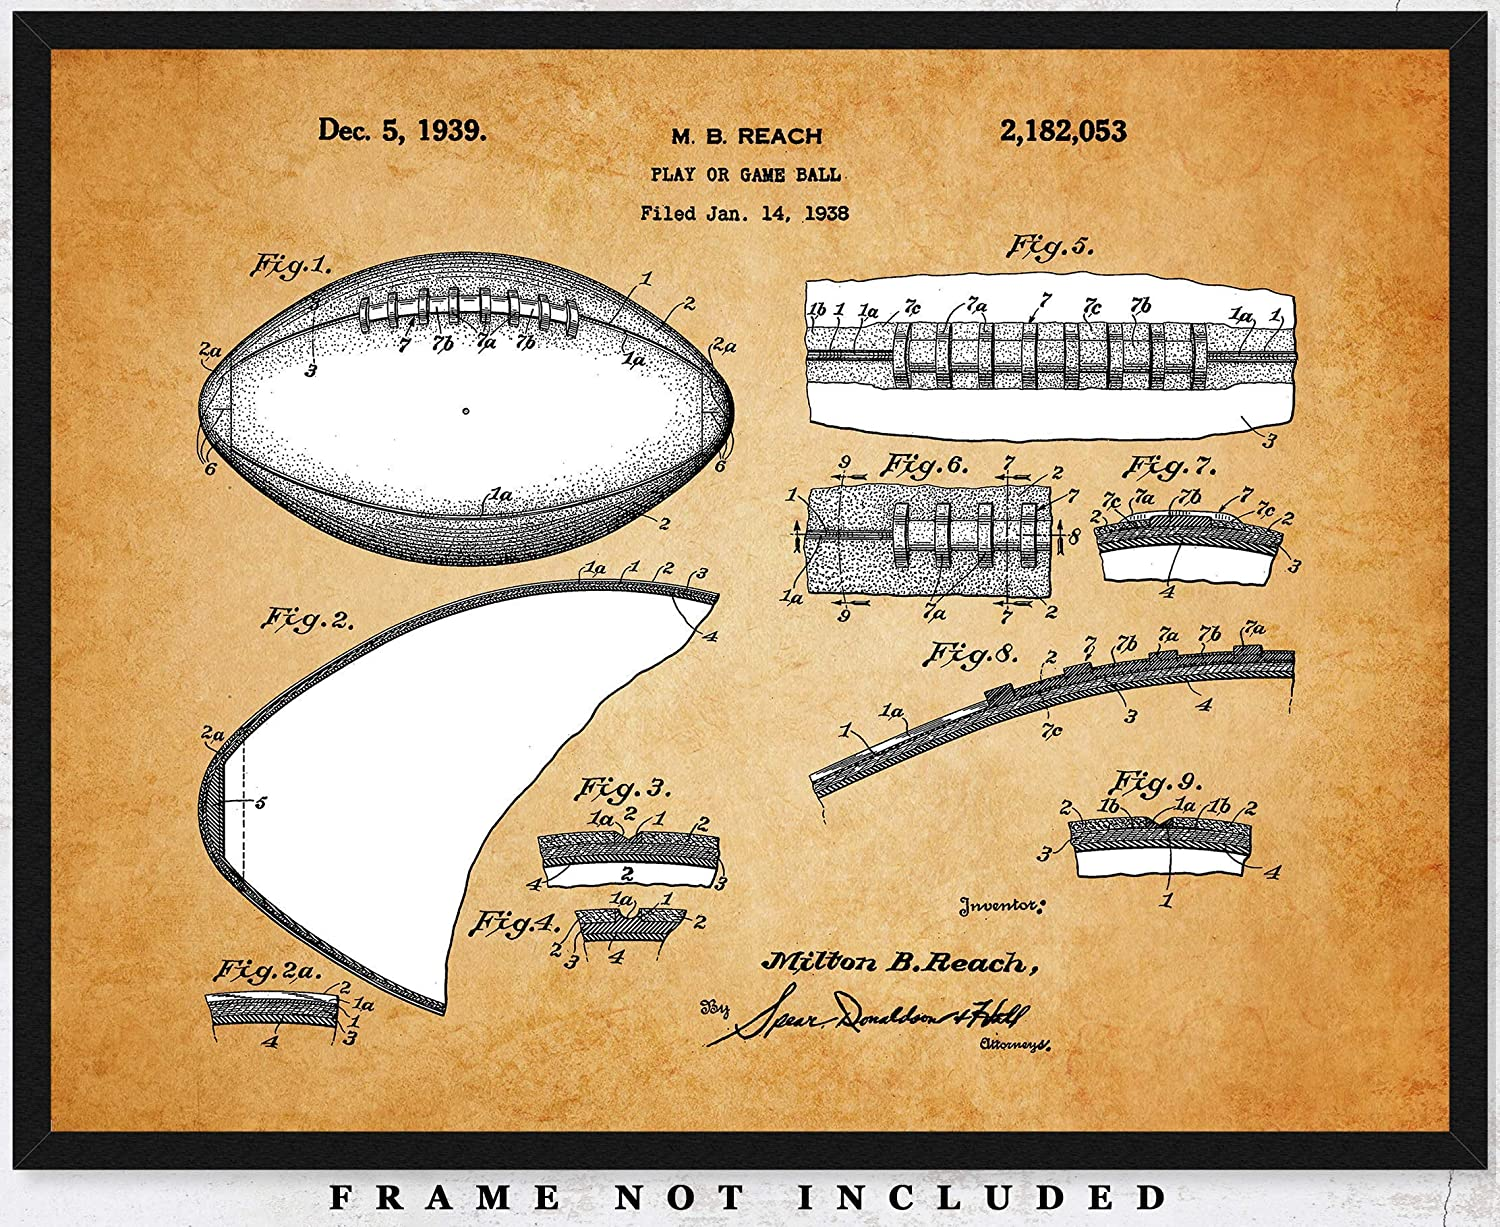 Vintage Football Patent Poster Print: Unframed 11x14 Photo - Unique Wall Art Sports Decor For Boys, Girls, Home Office, Game Room & Man Cave - Great Gift Under $15 for Men, Women, Coach